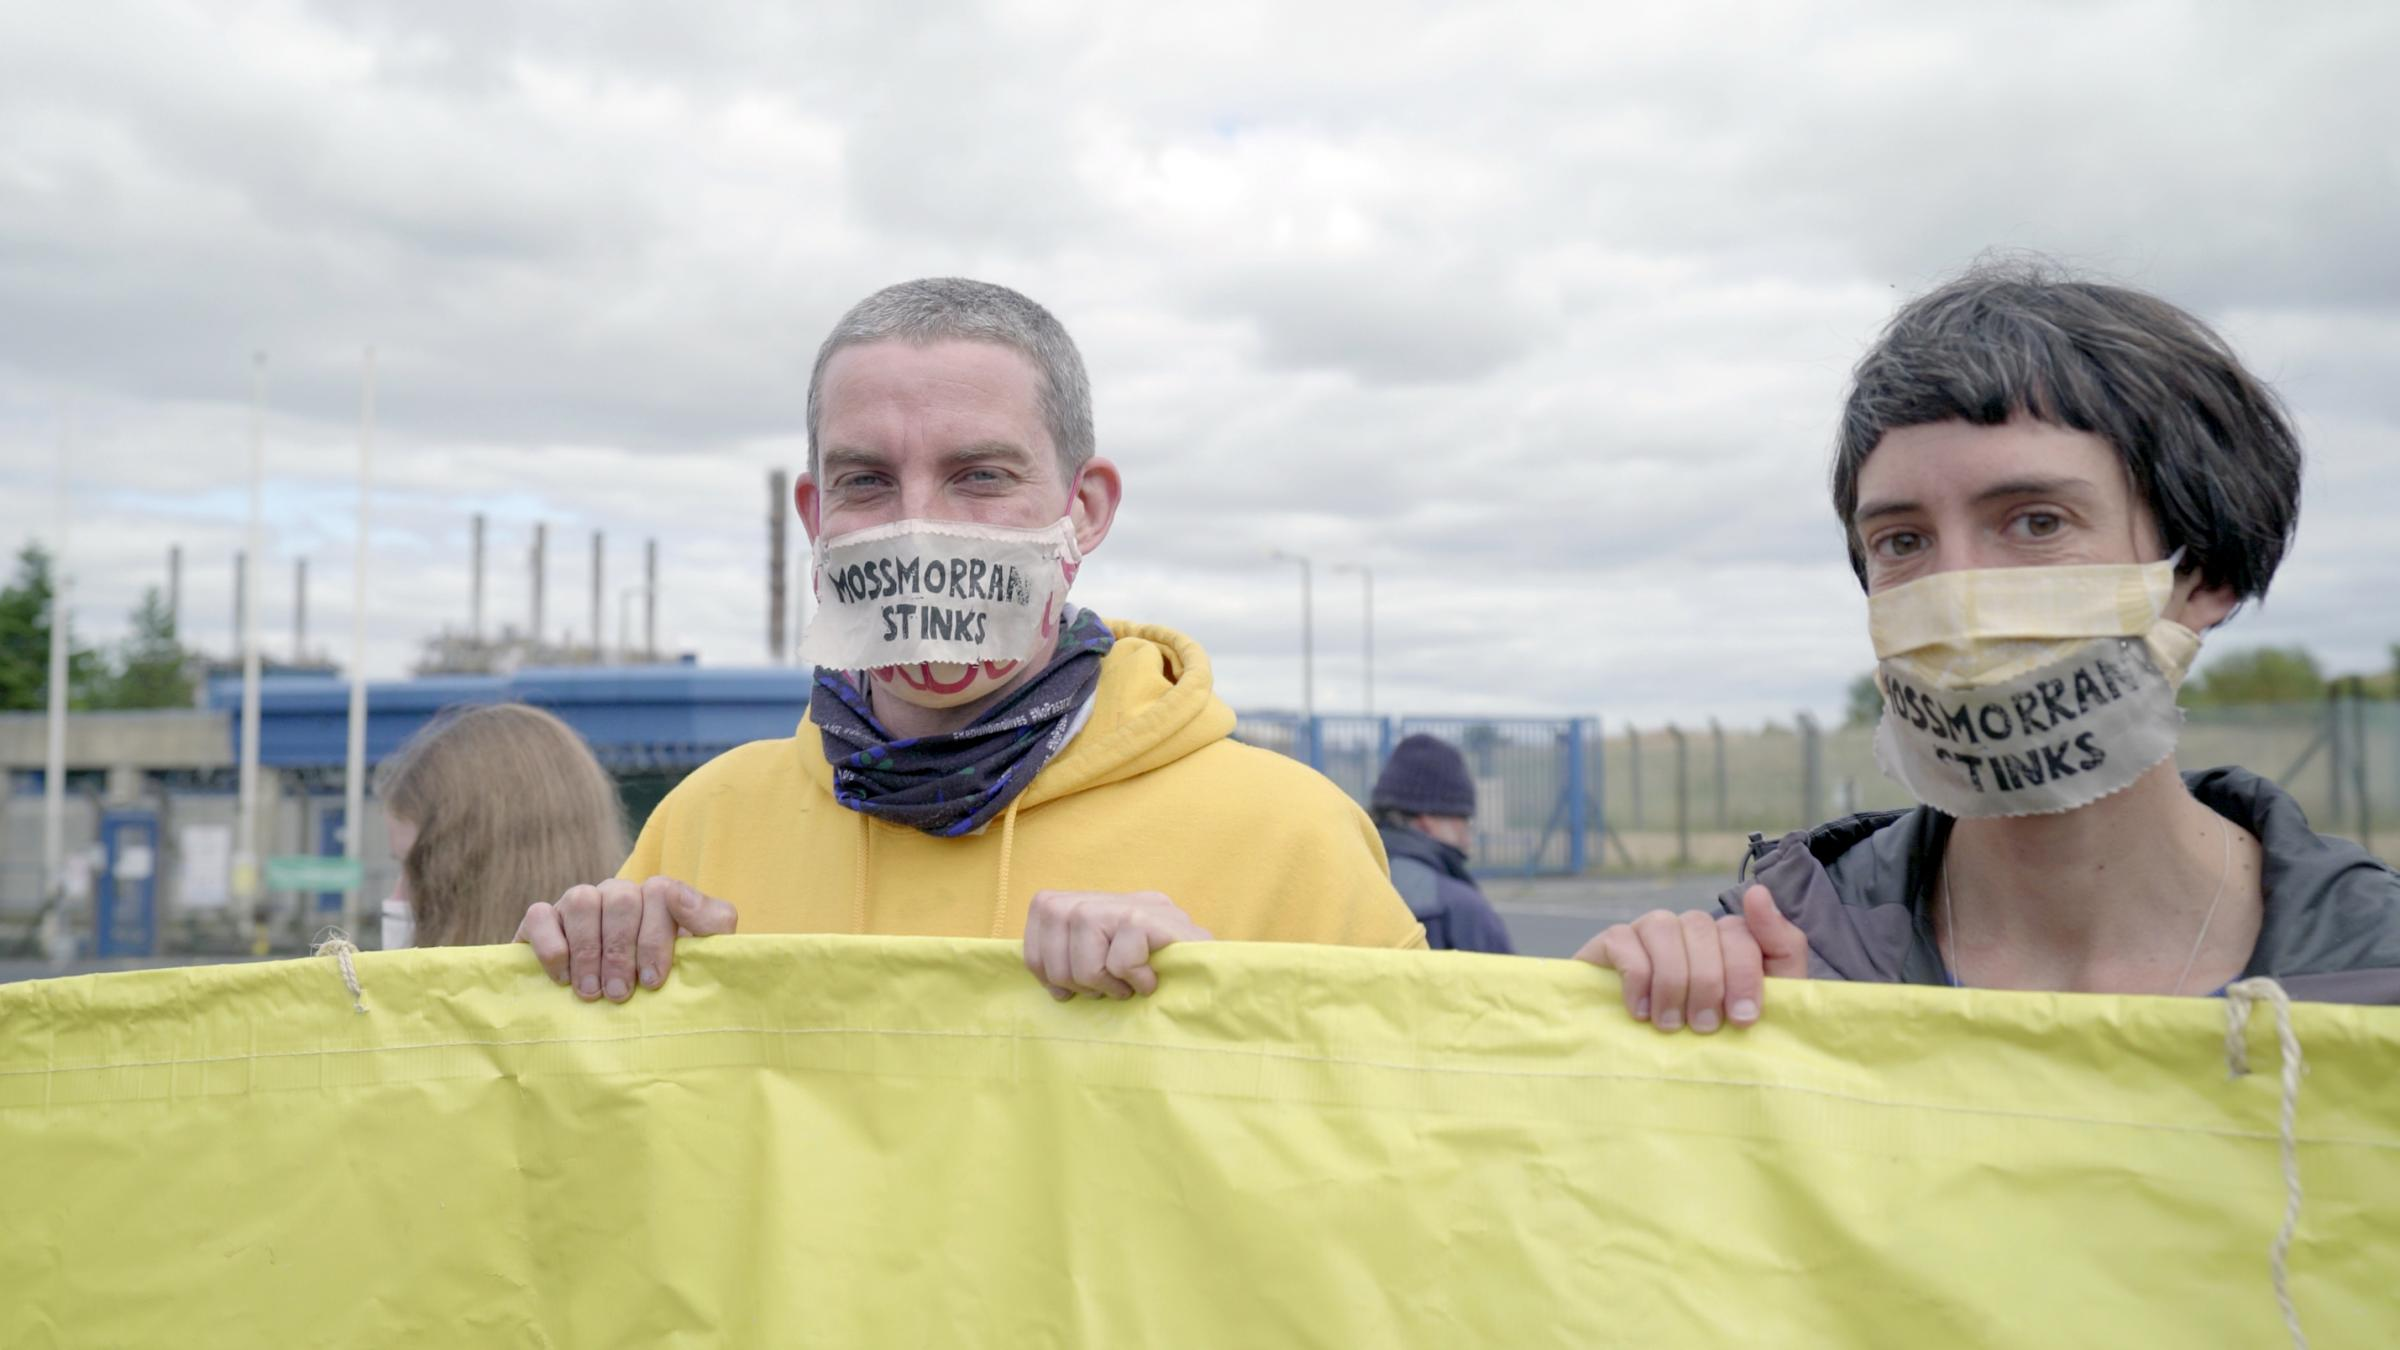 Mossmorran Action Weekend attracts over 100 climate change campaigners to Fife site